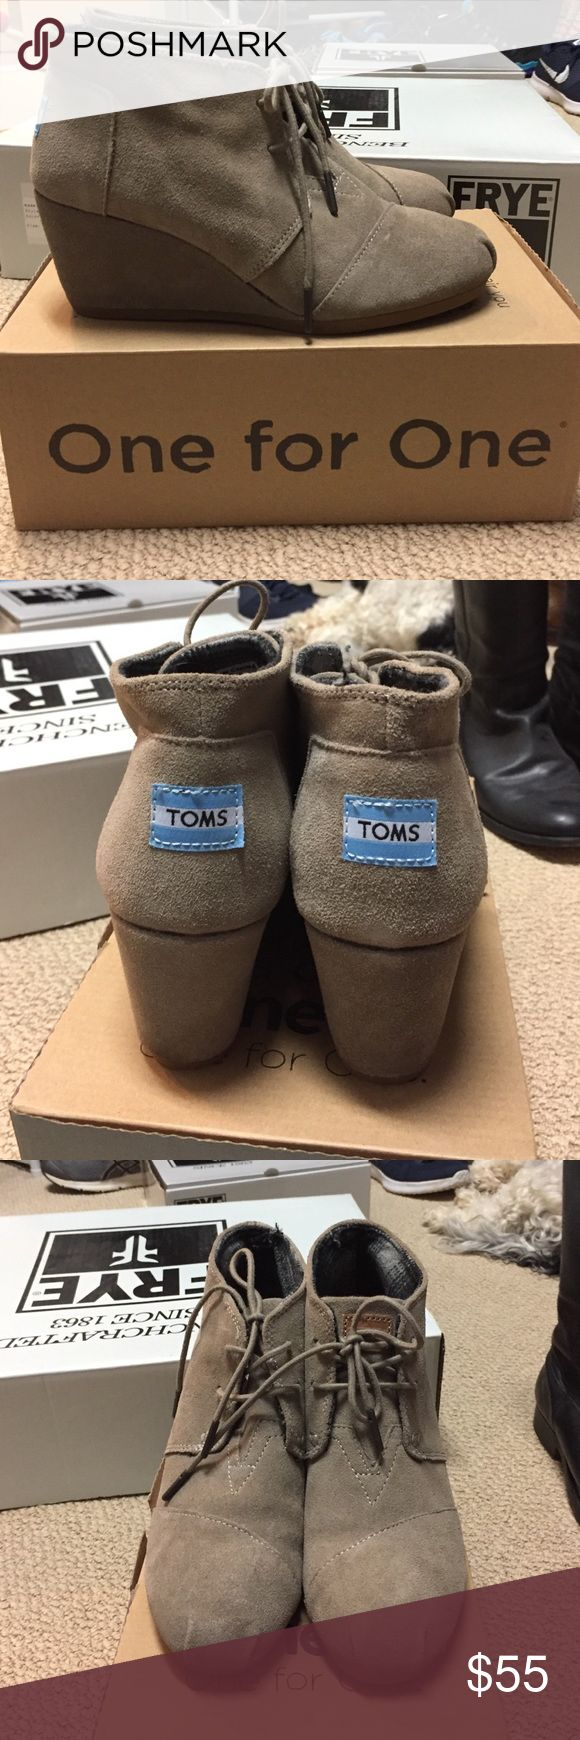 Toms desert wedge booties Toms Desert wedge booties size 7 Shoes Wedges